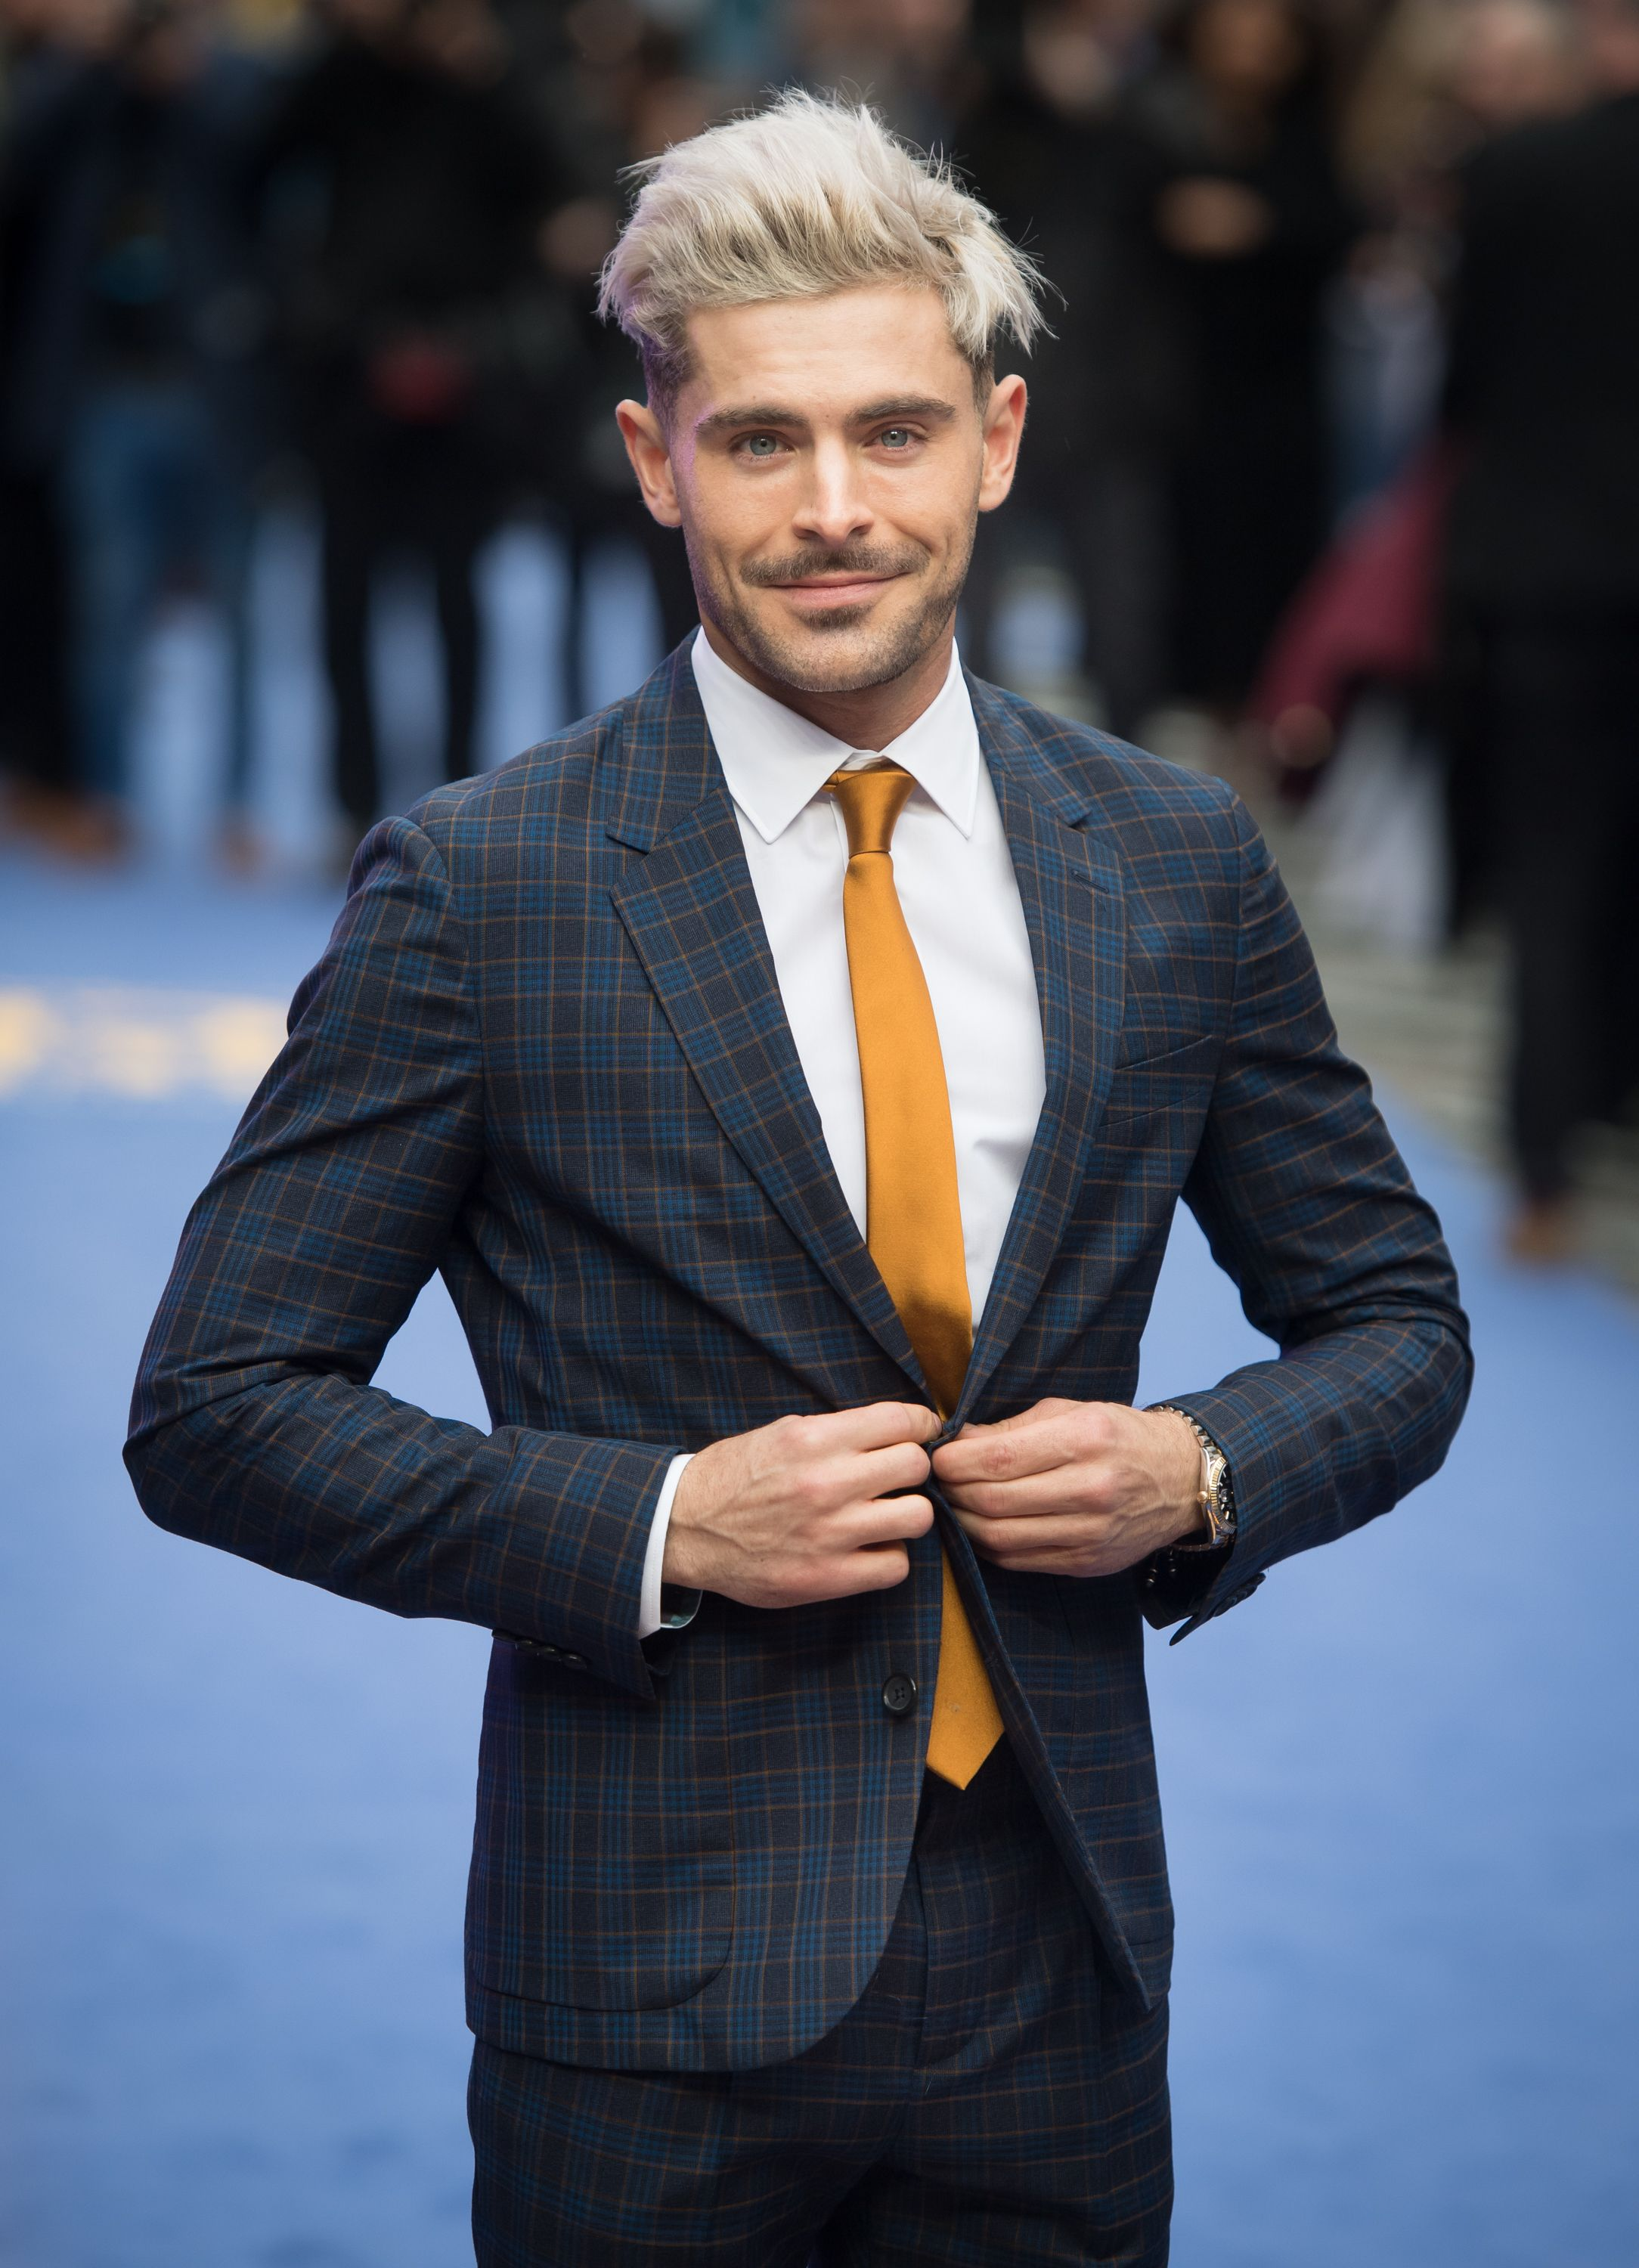 """Zac Efron atthe """"Extremely Wicked, Shockingly Evil and Vile"""" European premiere at The Curzon Mayfair on April 24, 2019, in London, England   Photo:Getty Images"""